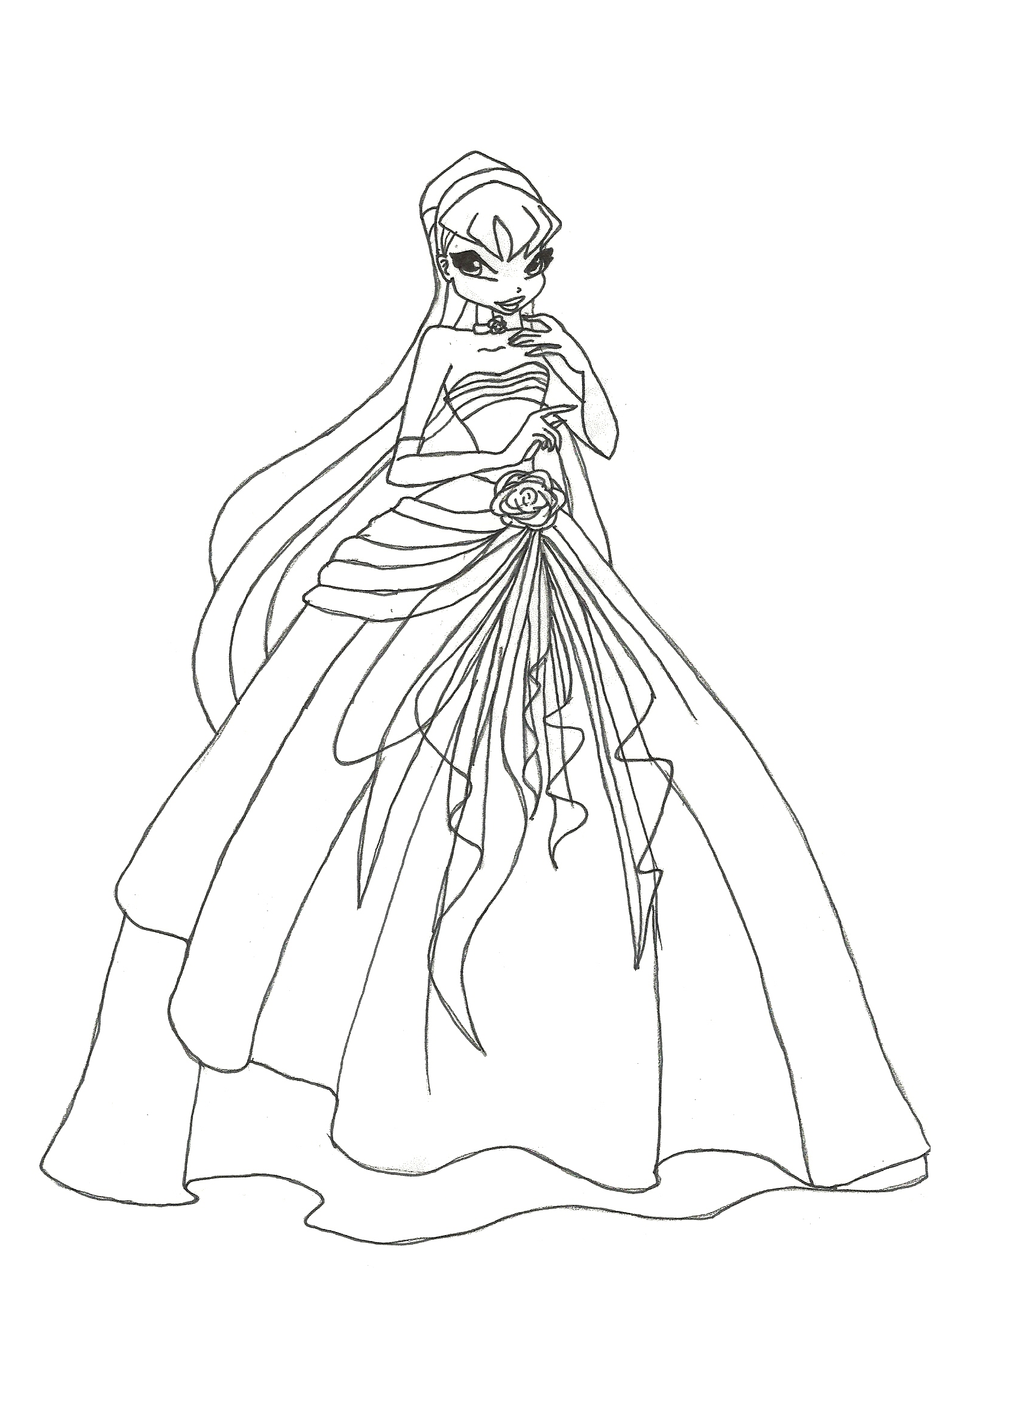 Winx coloring pages by winxmagic237 on deviantart - Comment dessiner les winx ...